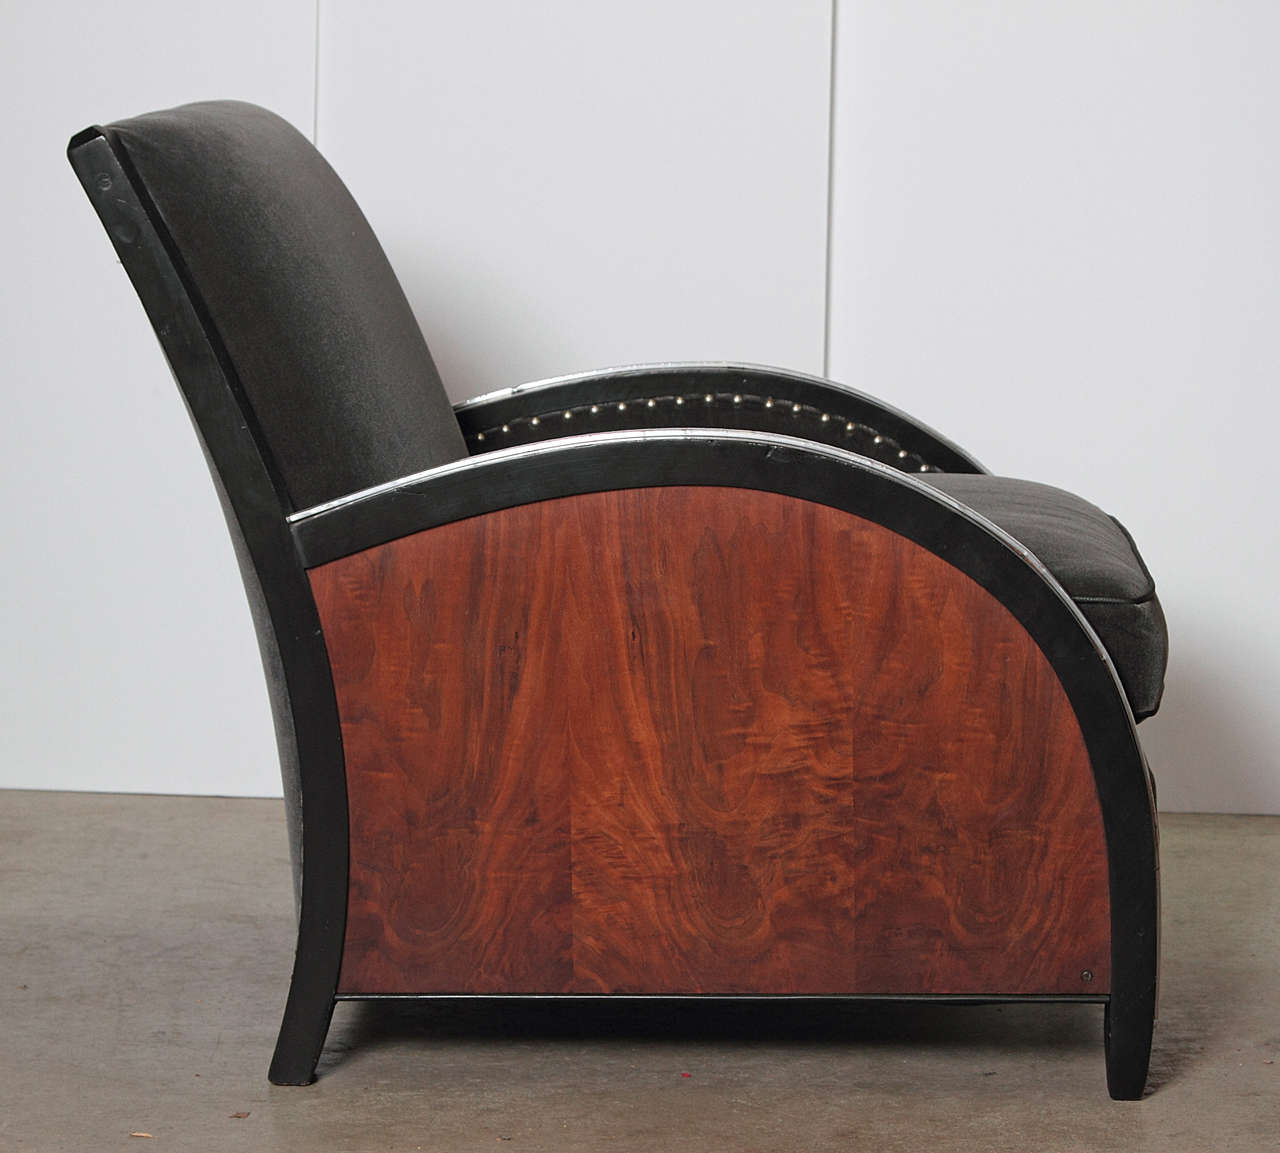 Cf Sze L The Deco Haus: Amazing Art Deco Lounge Chair By Hastings, Modernage Or